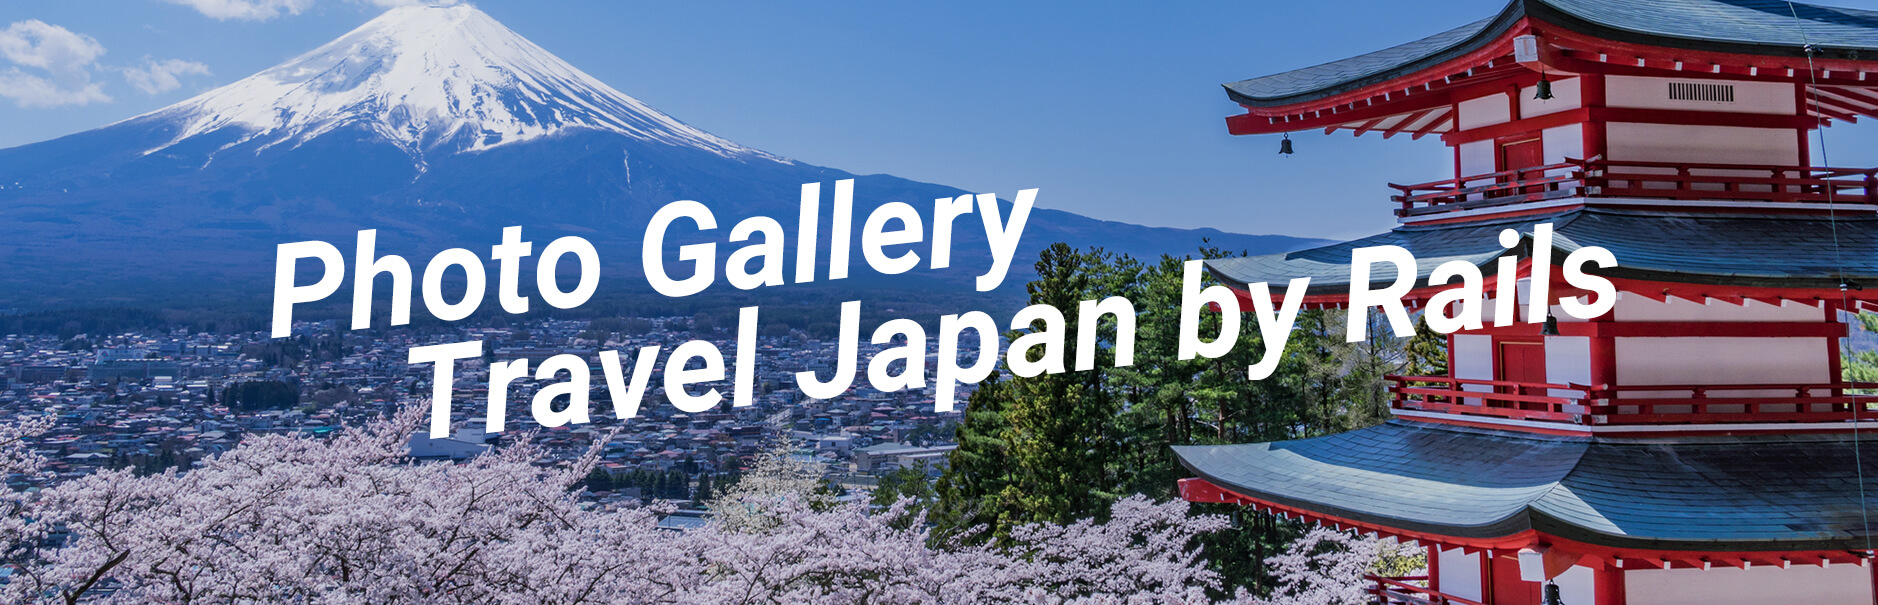 Photo Gallery Travel Japan by Rails